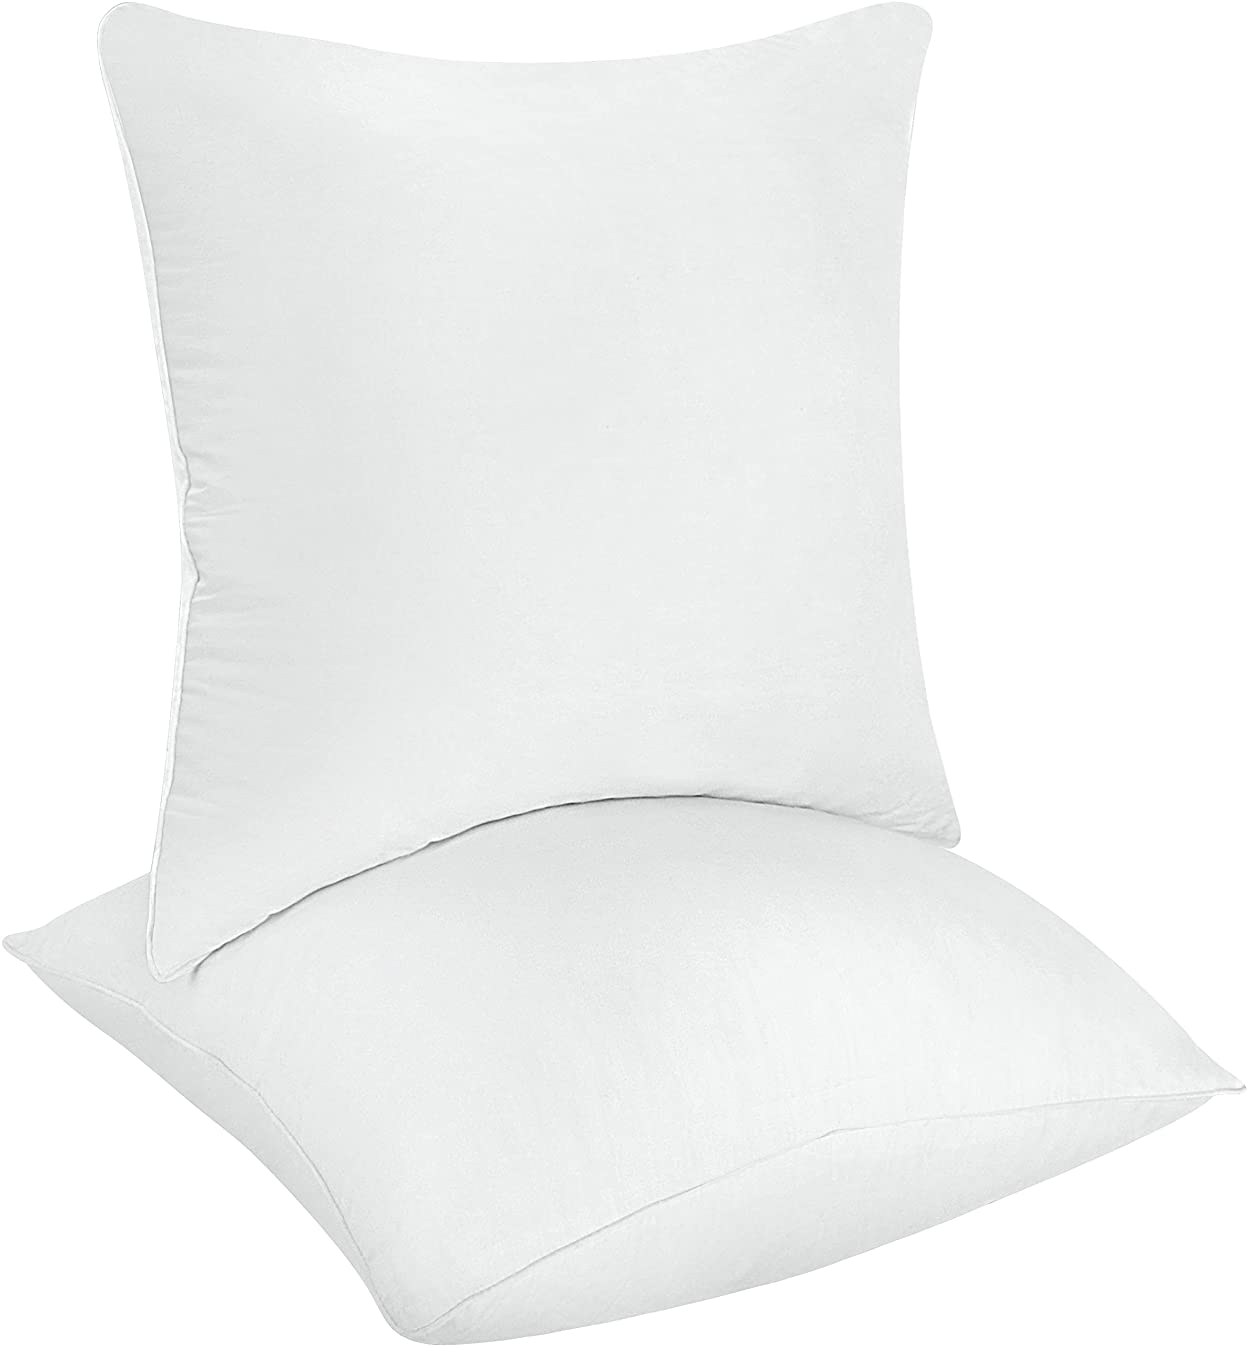 Utopia Bedding Decorative Pillow Inserts (Pack of 2, White) - Square Pillow 18 x 18 Inches Bed and Couch Pillows - Indoor Throw Pillows